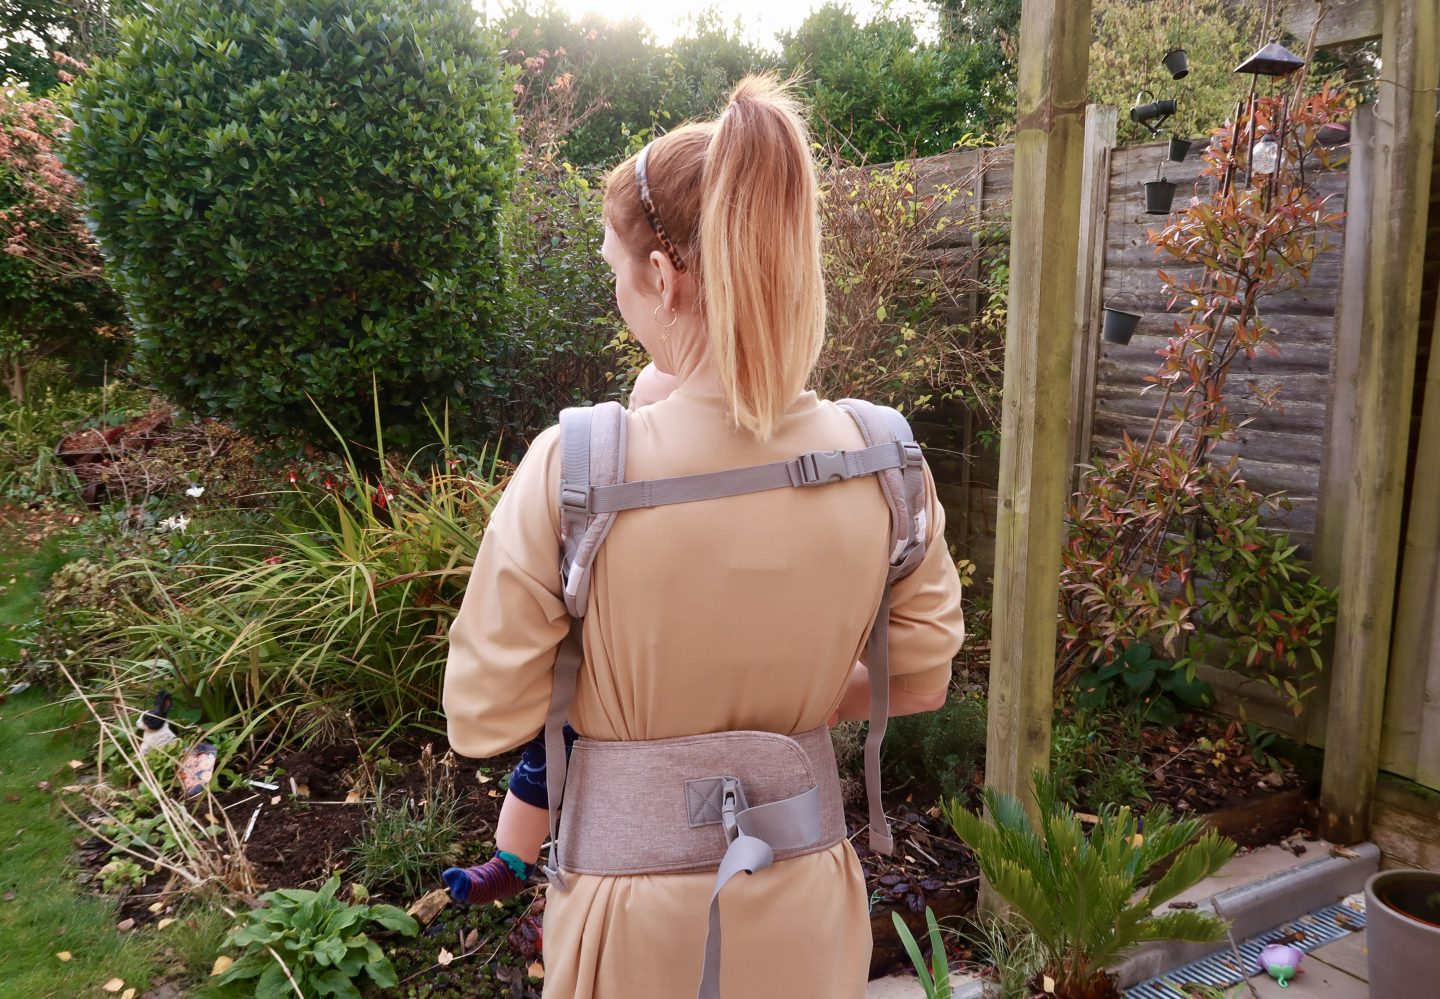 girl with lictin baby carrier straps from behind